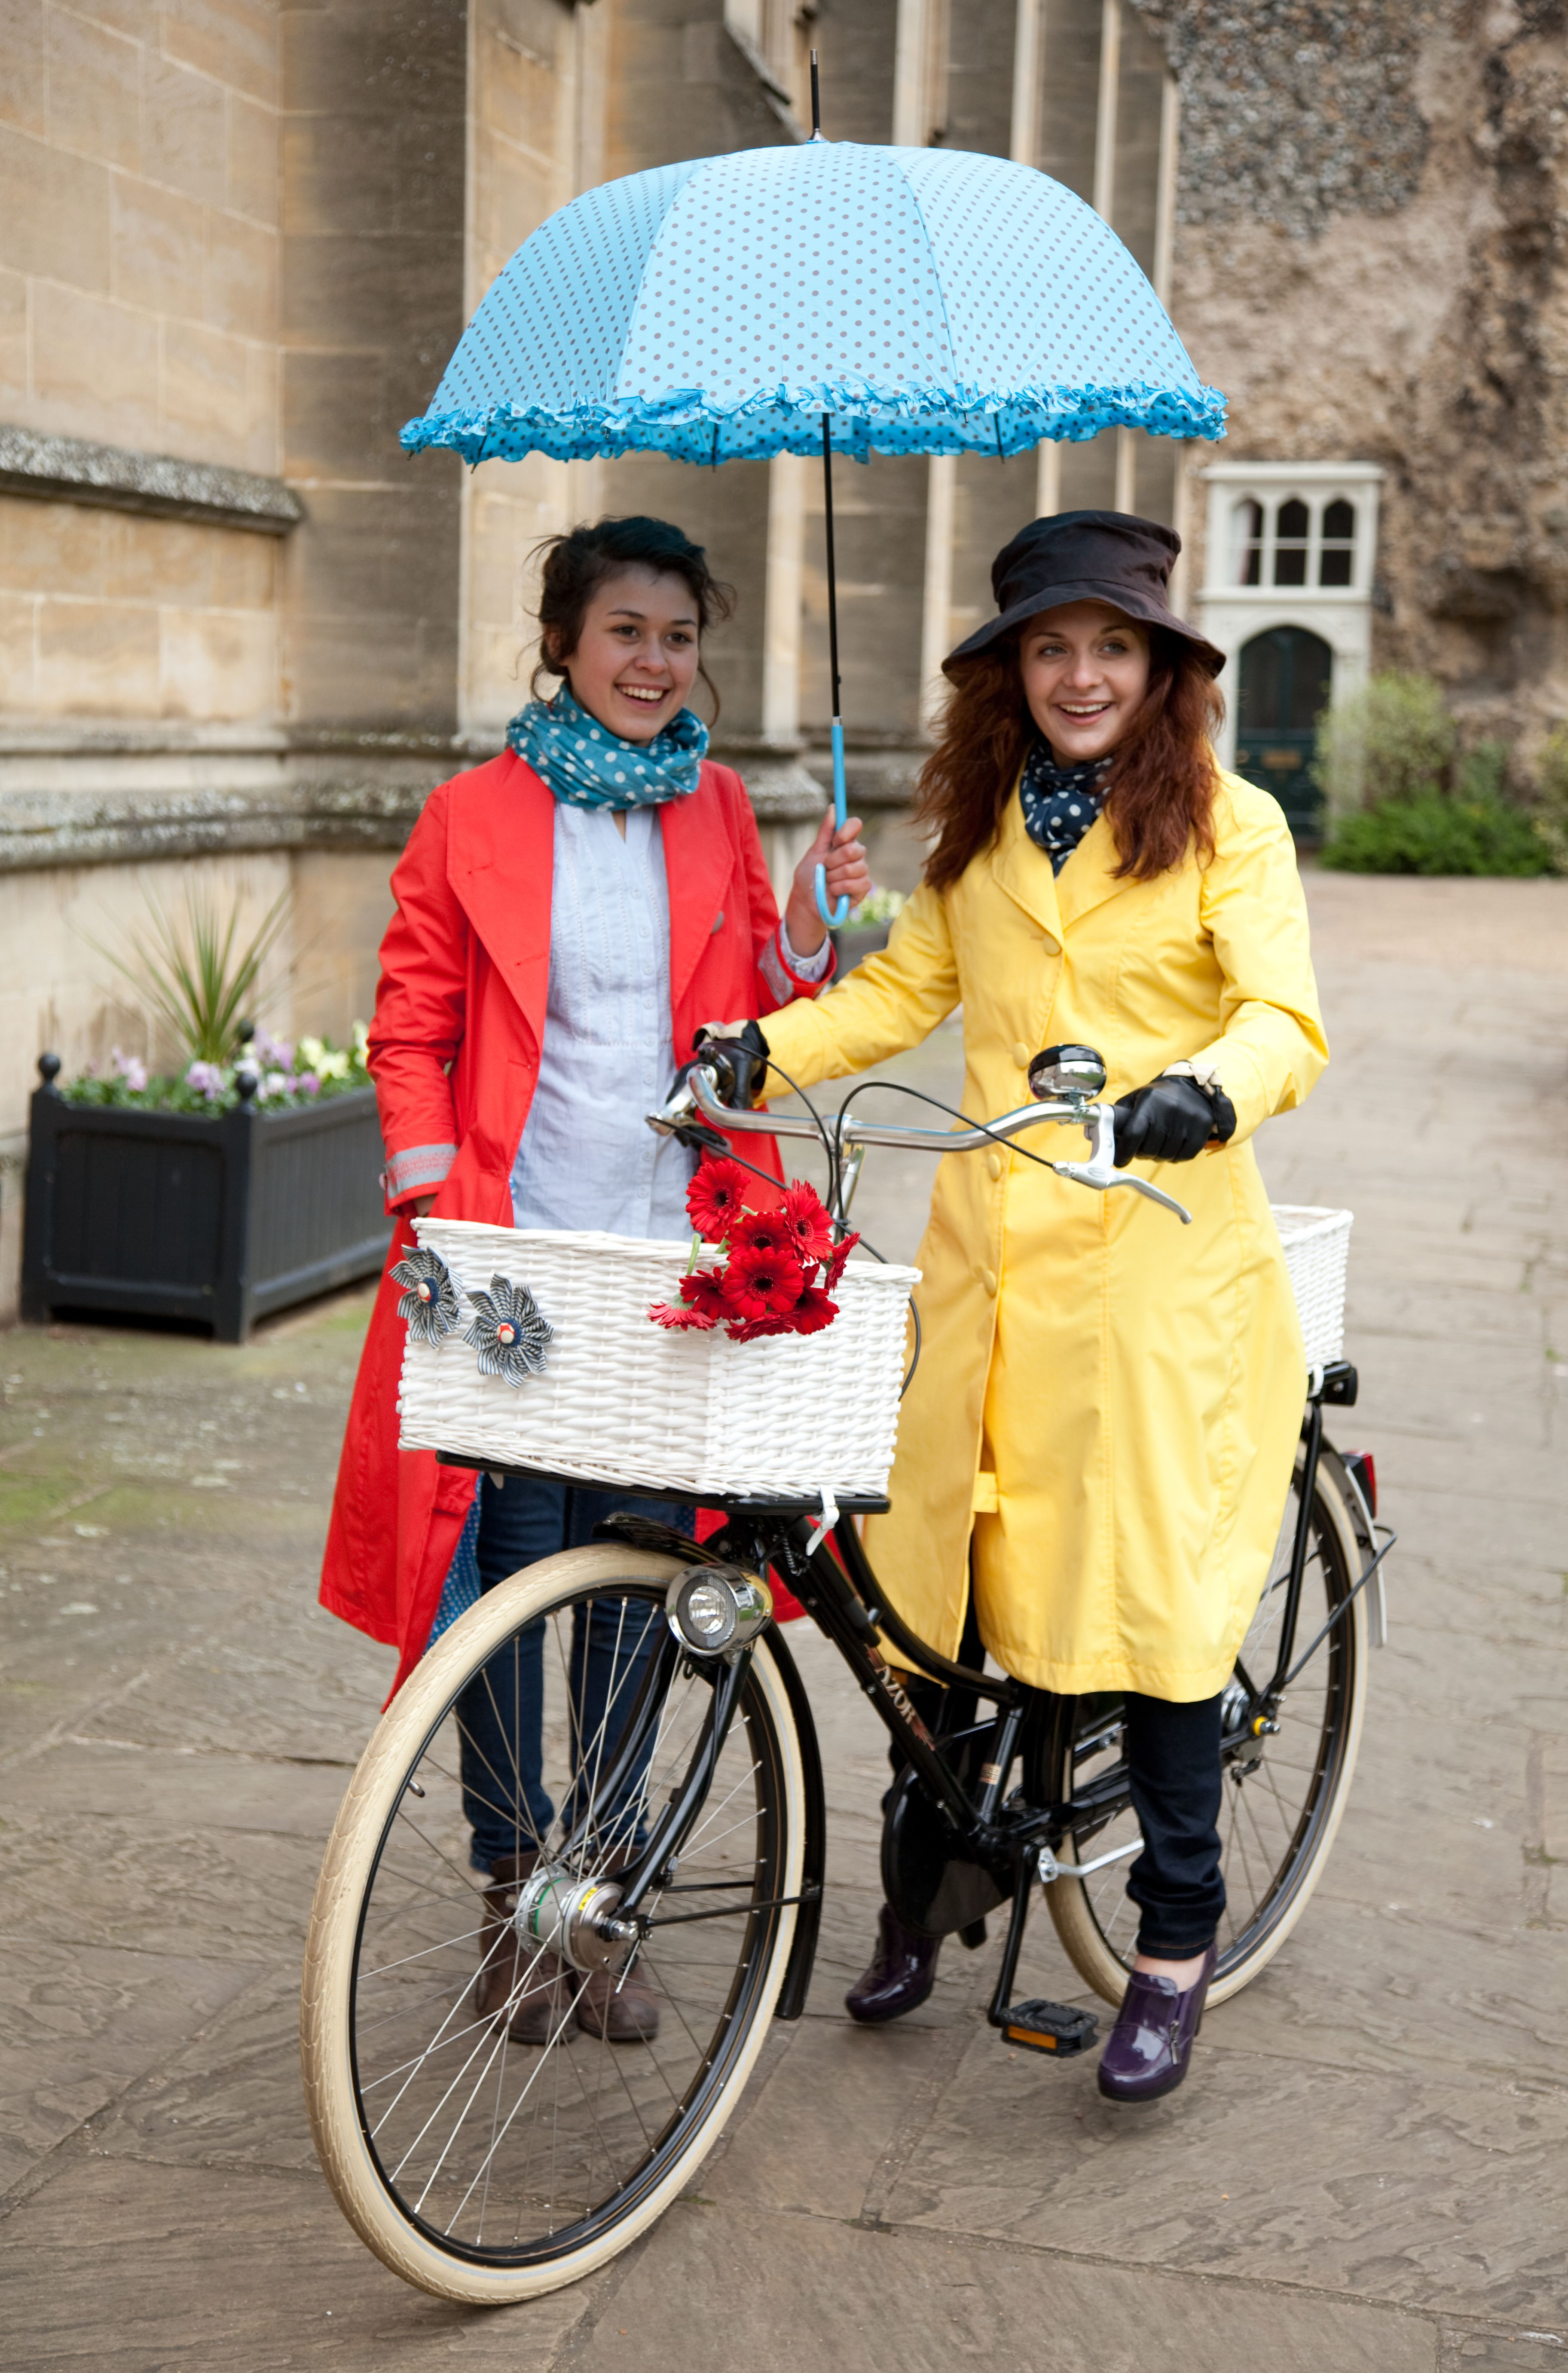 Cambridge Raincoats - the original fashion raincoat for those who ride upright bicycles. Made in England.